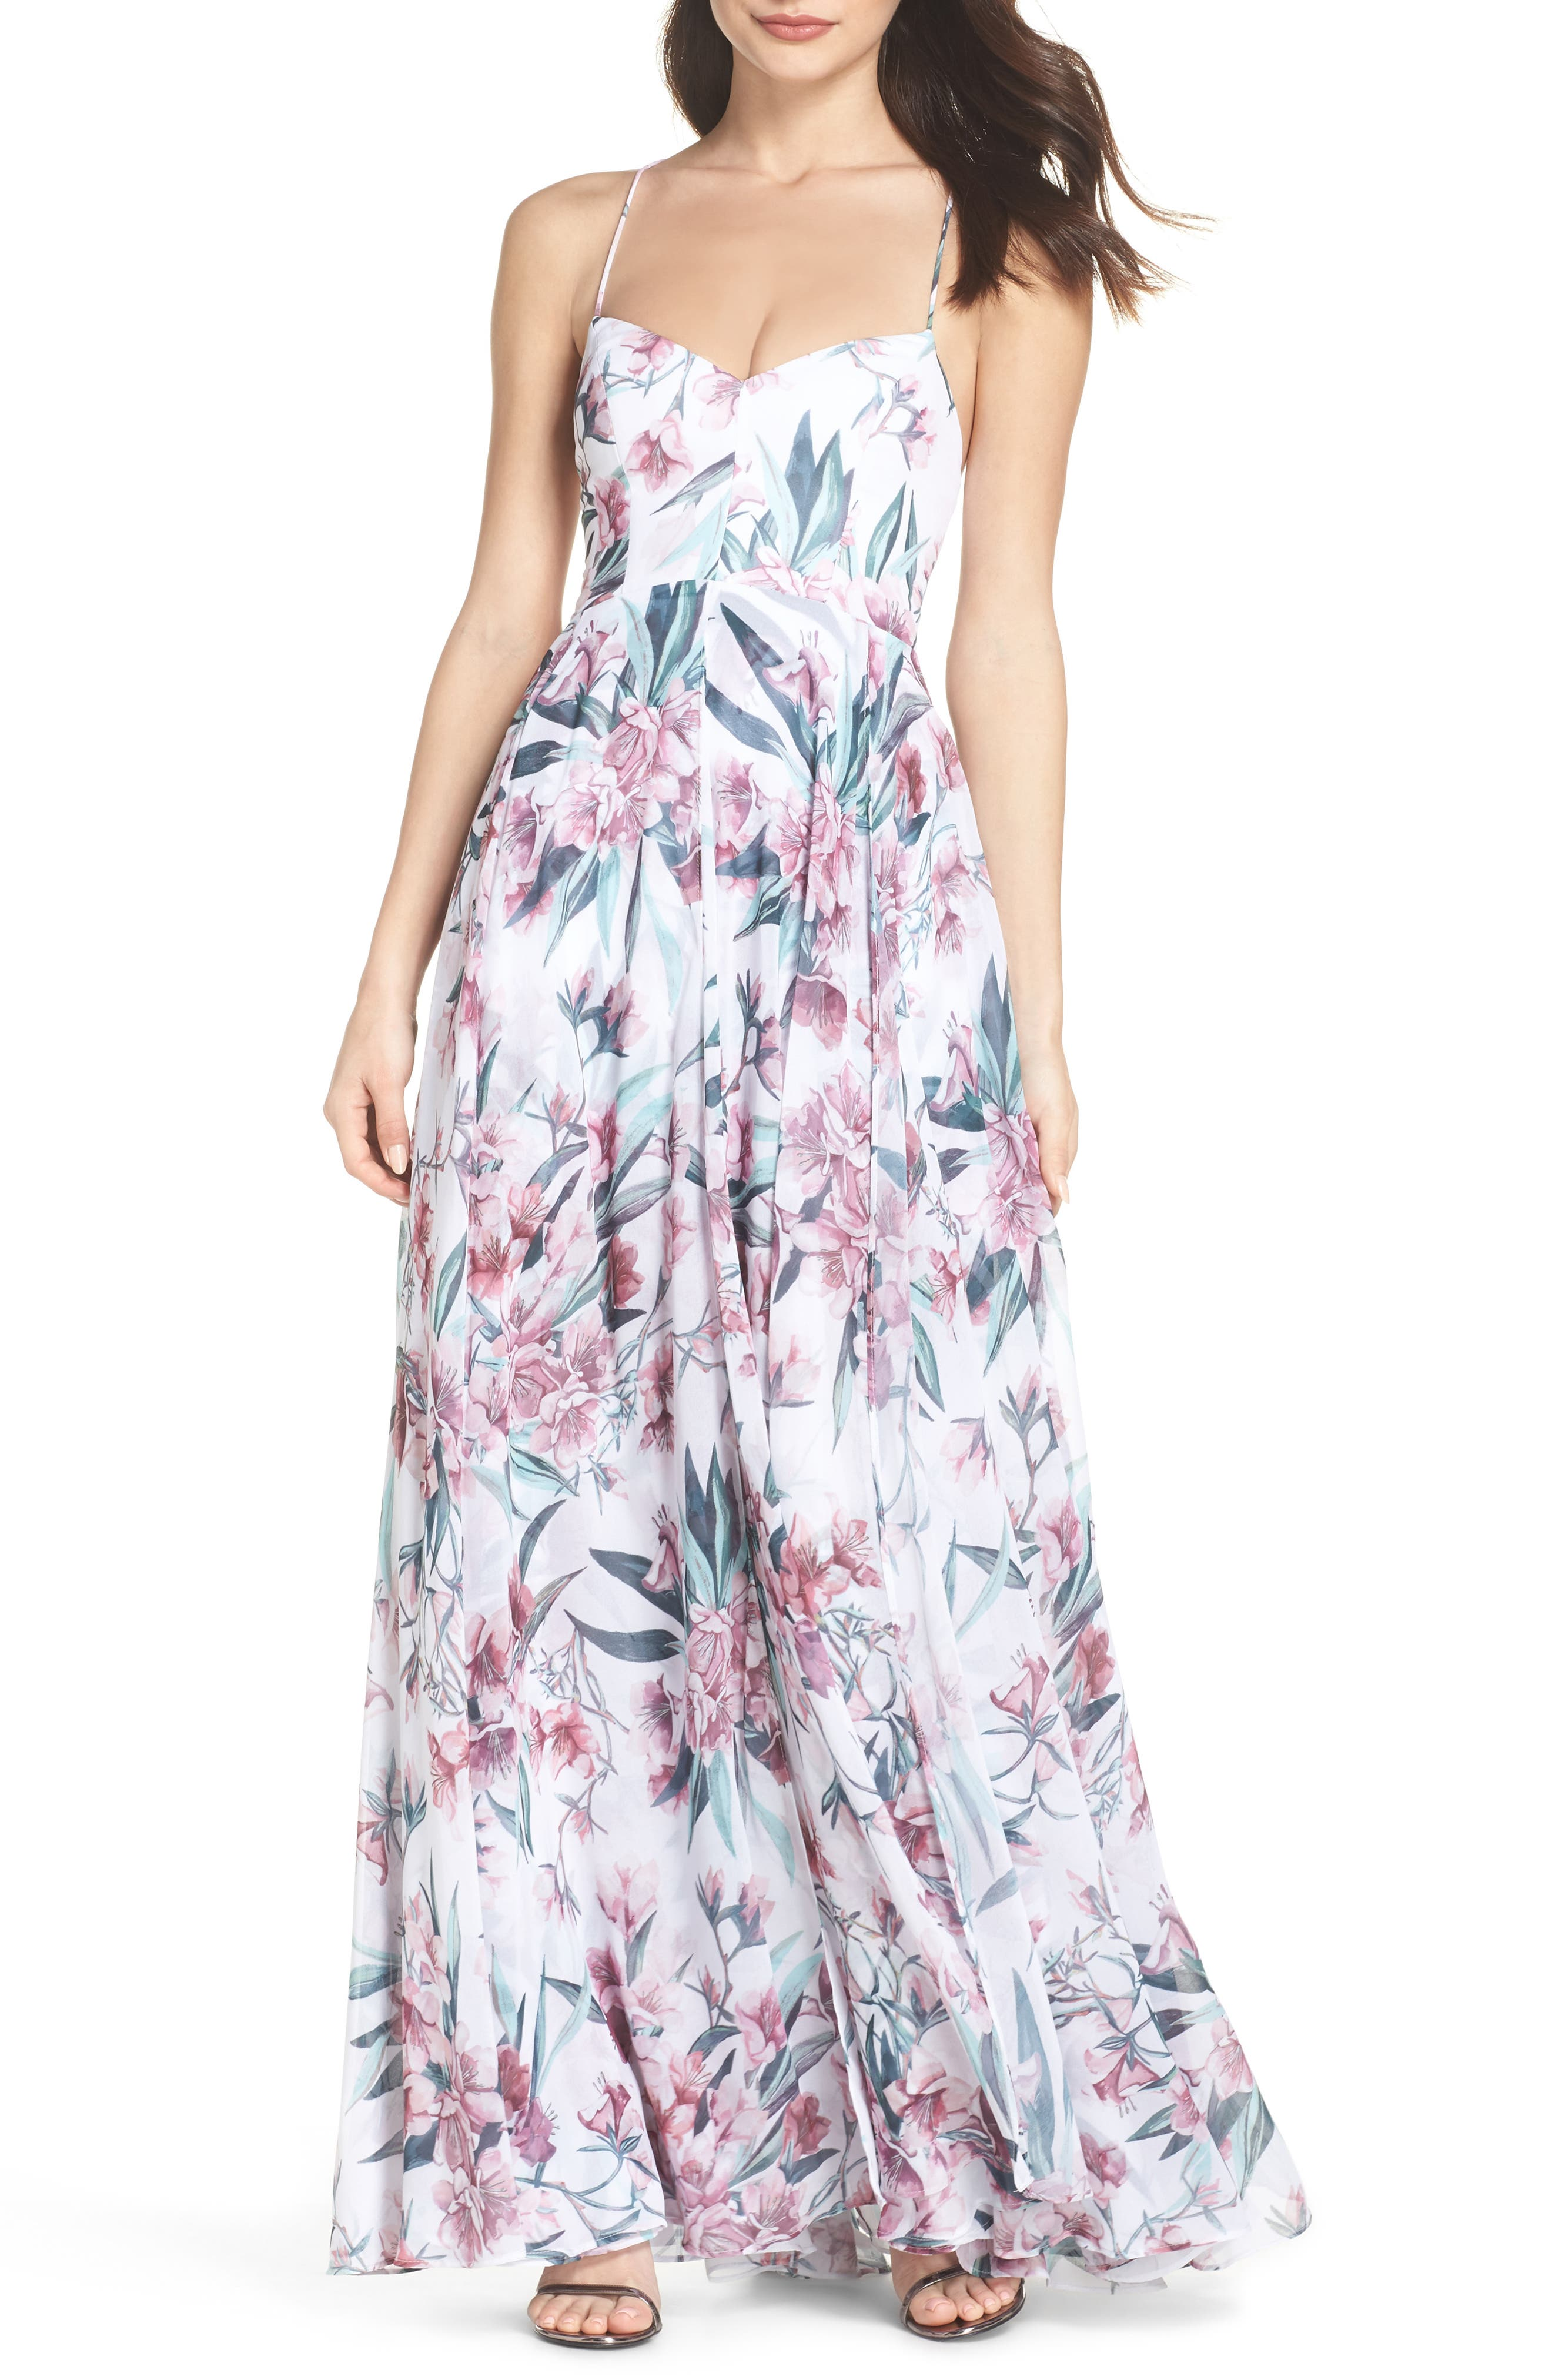 Khoo Floral Gown,                             Main thumbnail 1, color,                             100